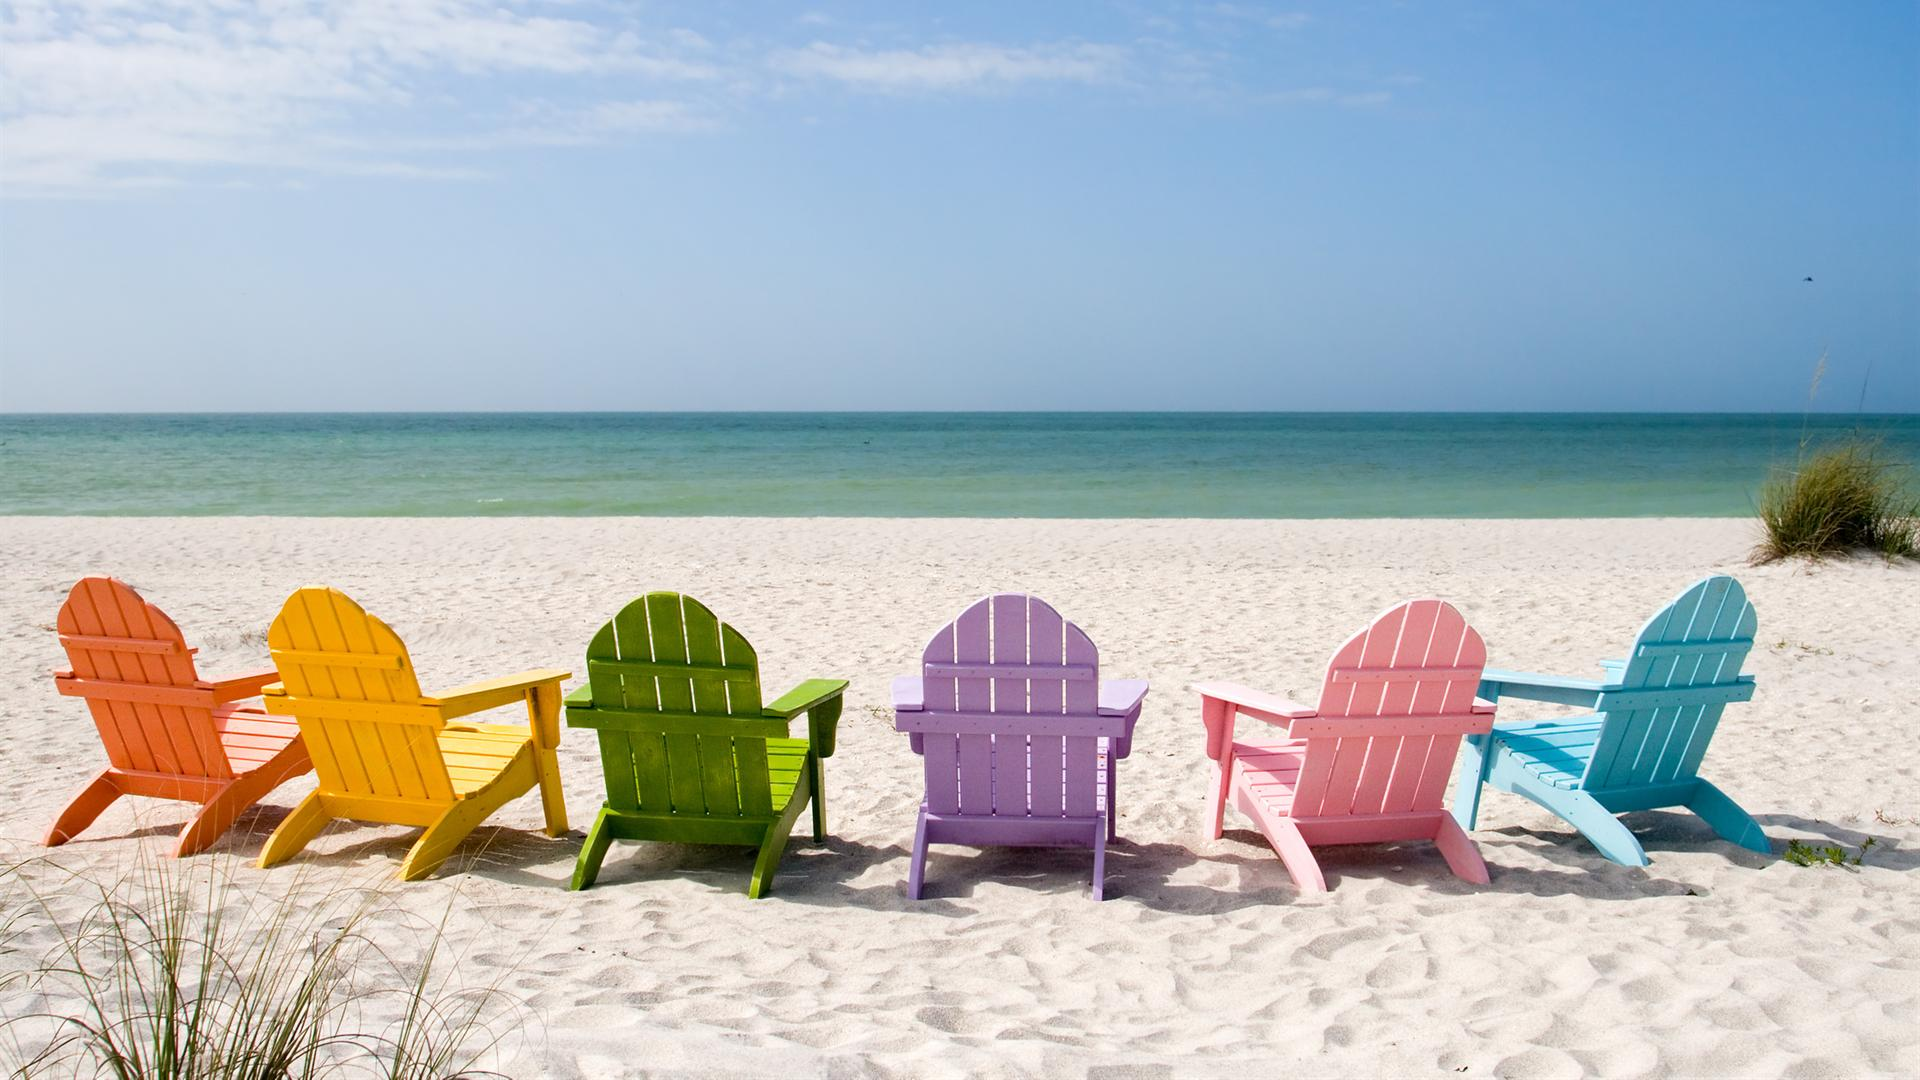 Colored Chairs on Beach